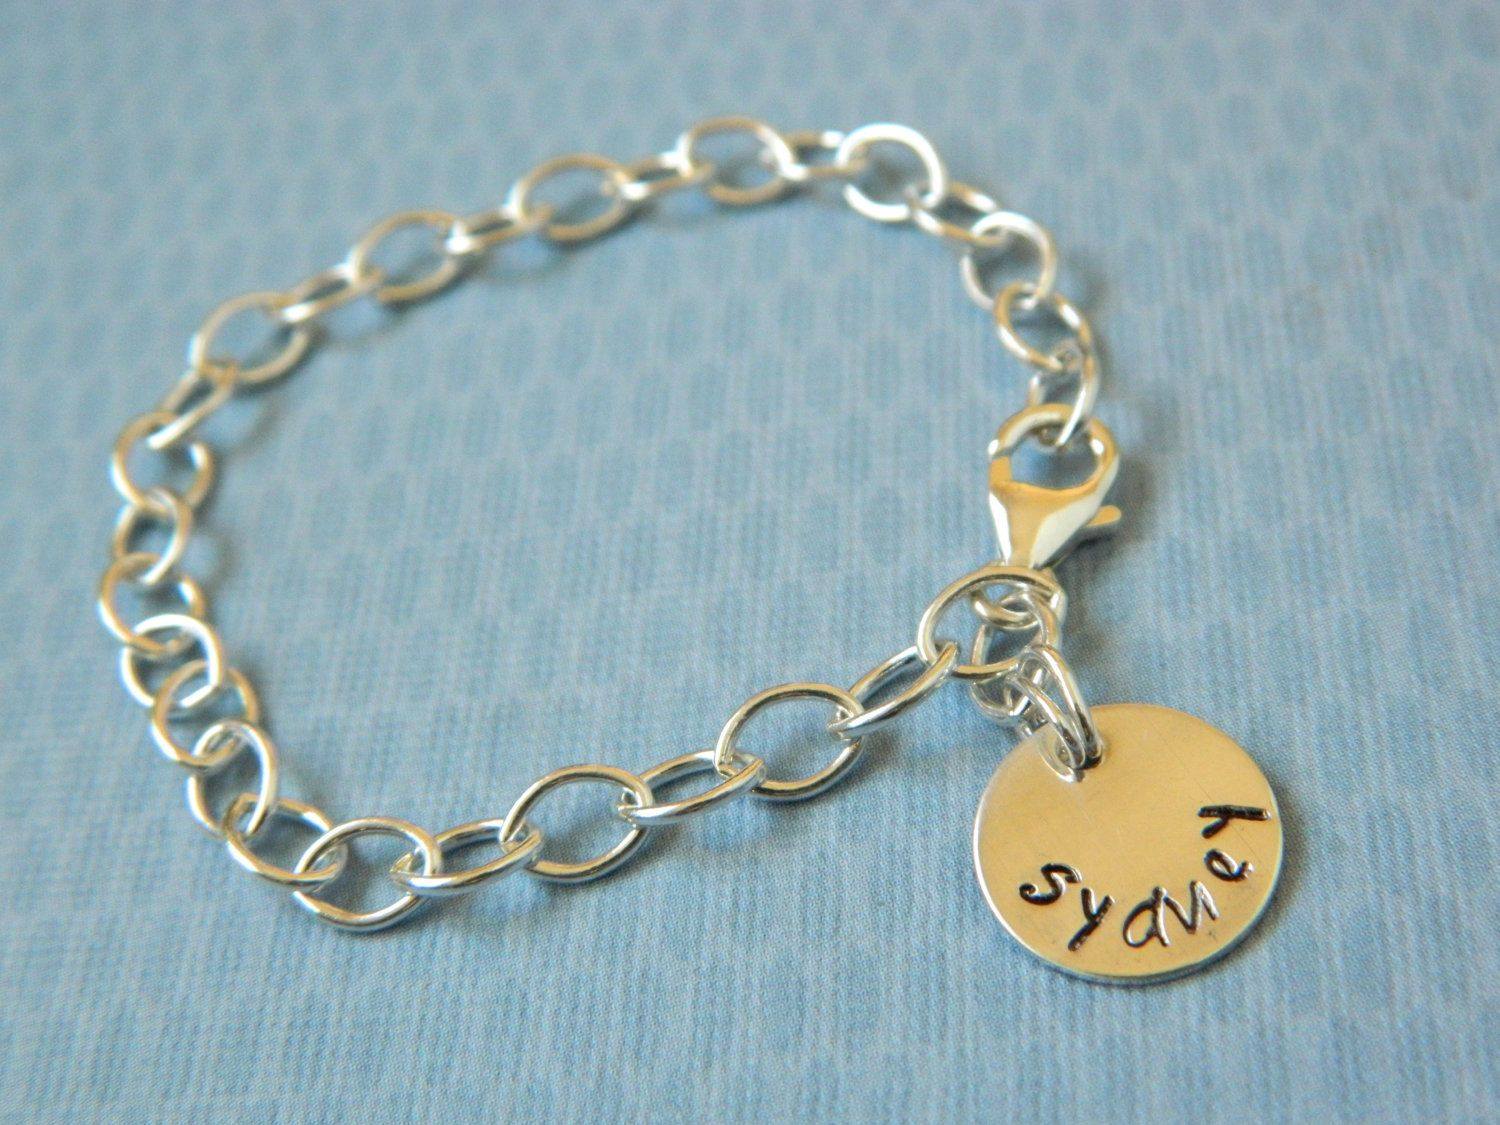 Girls Sterling Silver Charm Bracelet Hand Stamped by erinsmeltz